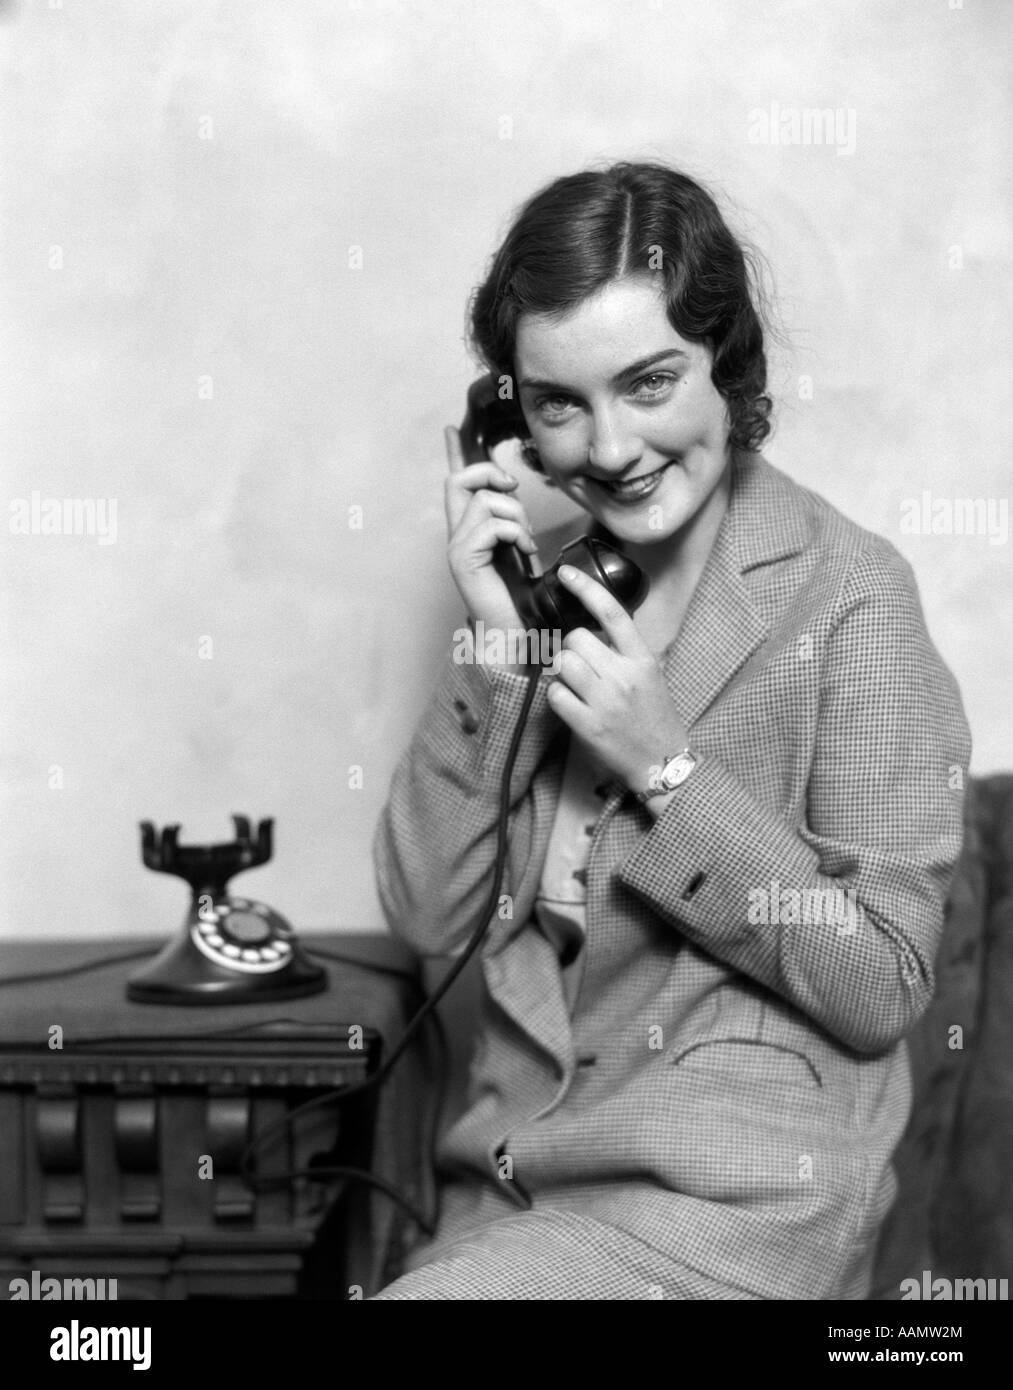 1920s SMILING WOMAN TALKING ON TELEPHONE - Stock Image